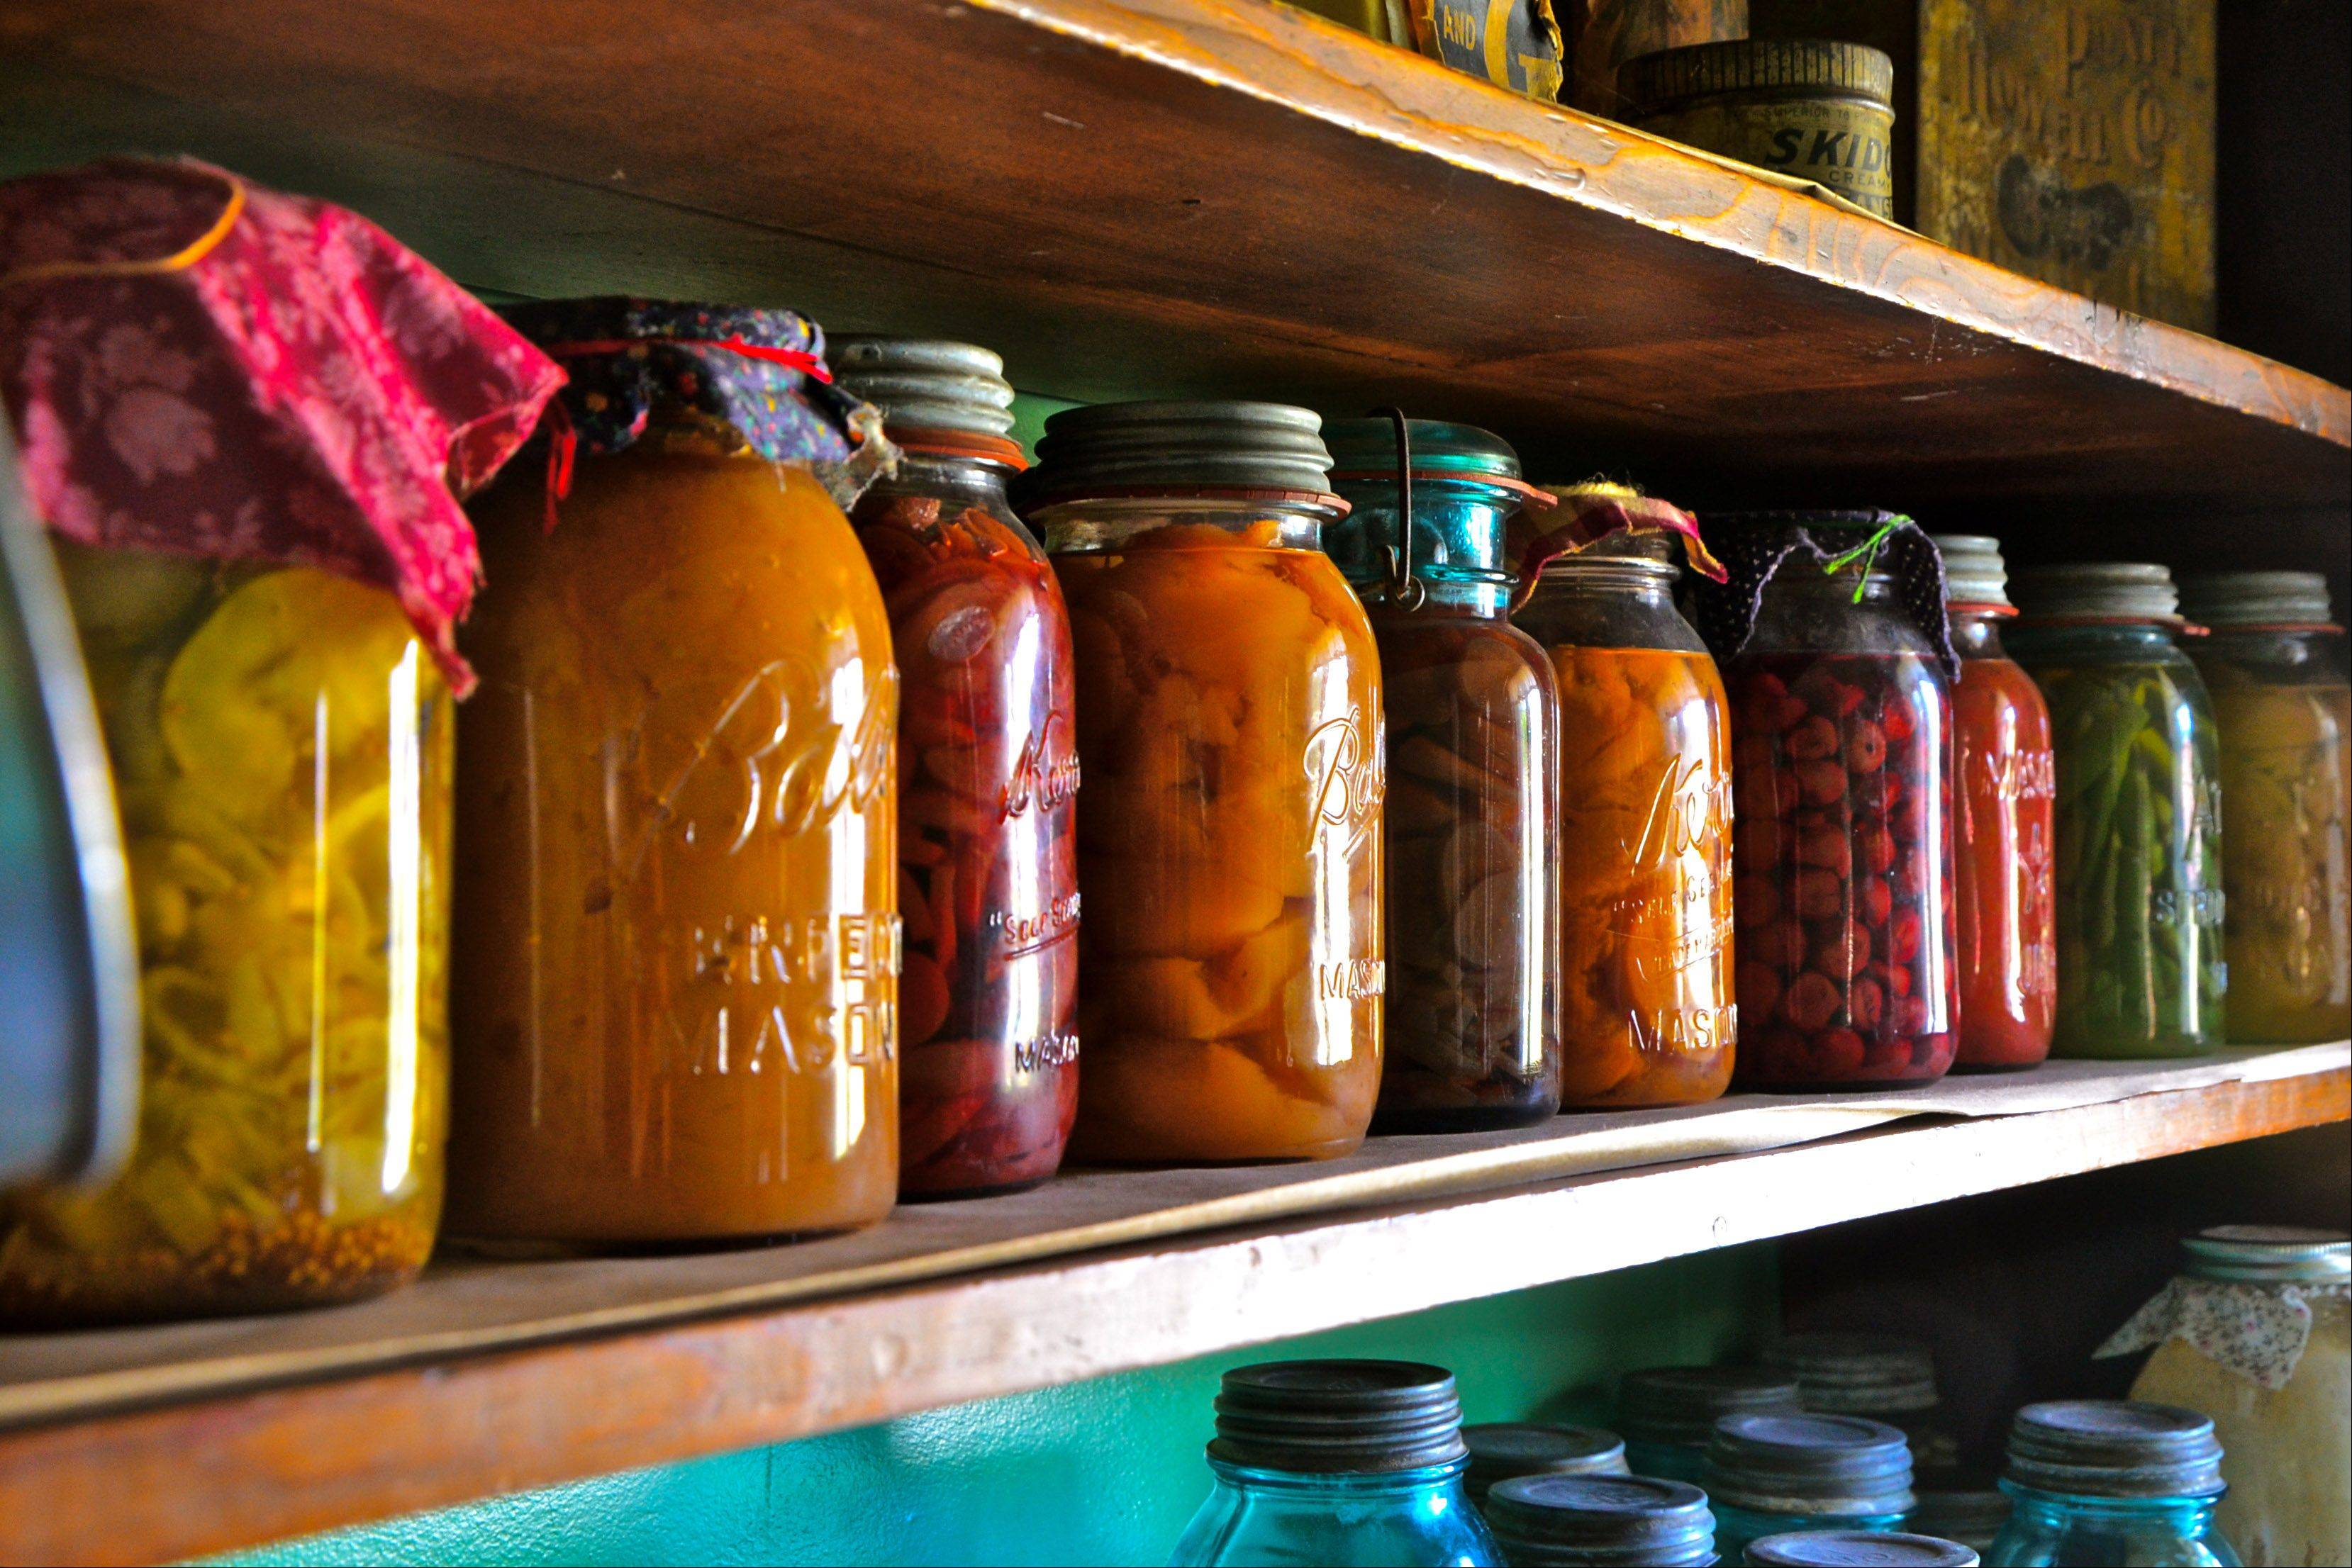 I took this picture at the Living History Farms in Urbandale Iowa. One of the farm houses had a pantry with this colorful group of canned foods in traditional glass Mason jars.